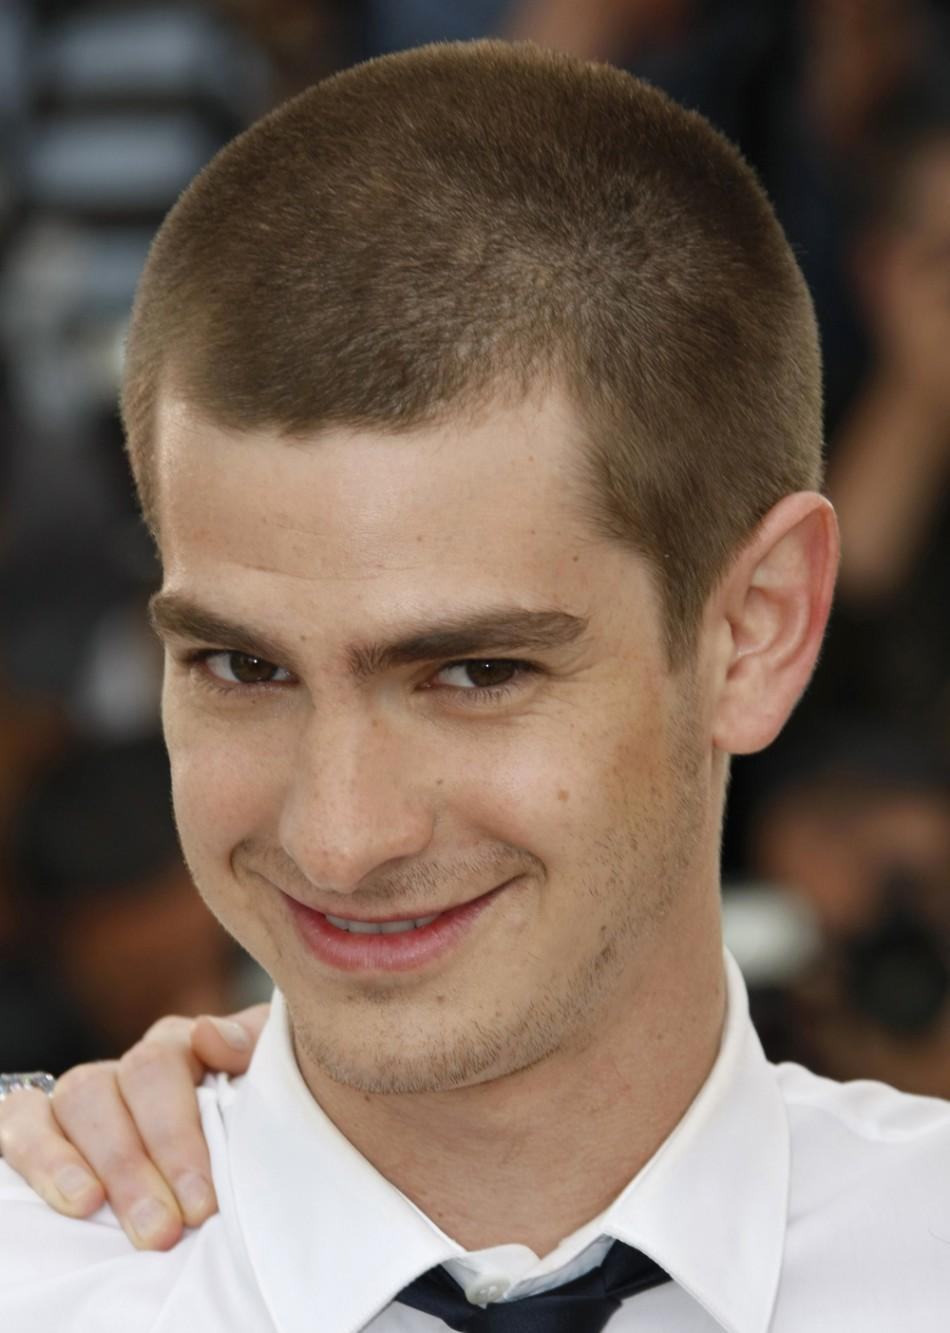 """Andrew Garfield poses during a photocall for the film """"The imaginarium of Doctor Parnassus"""